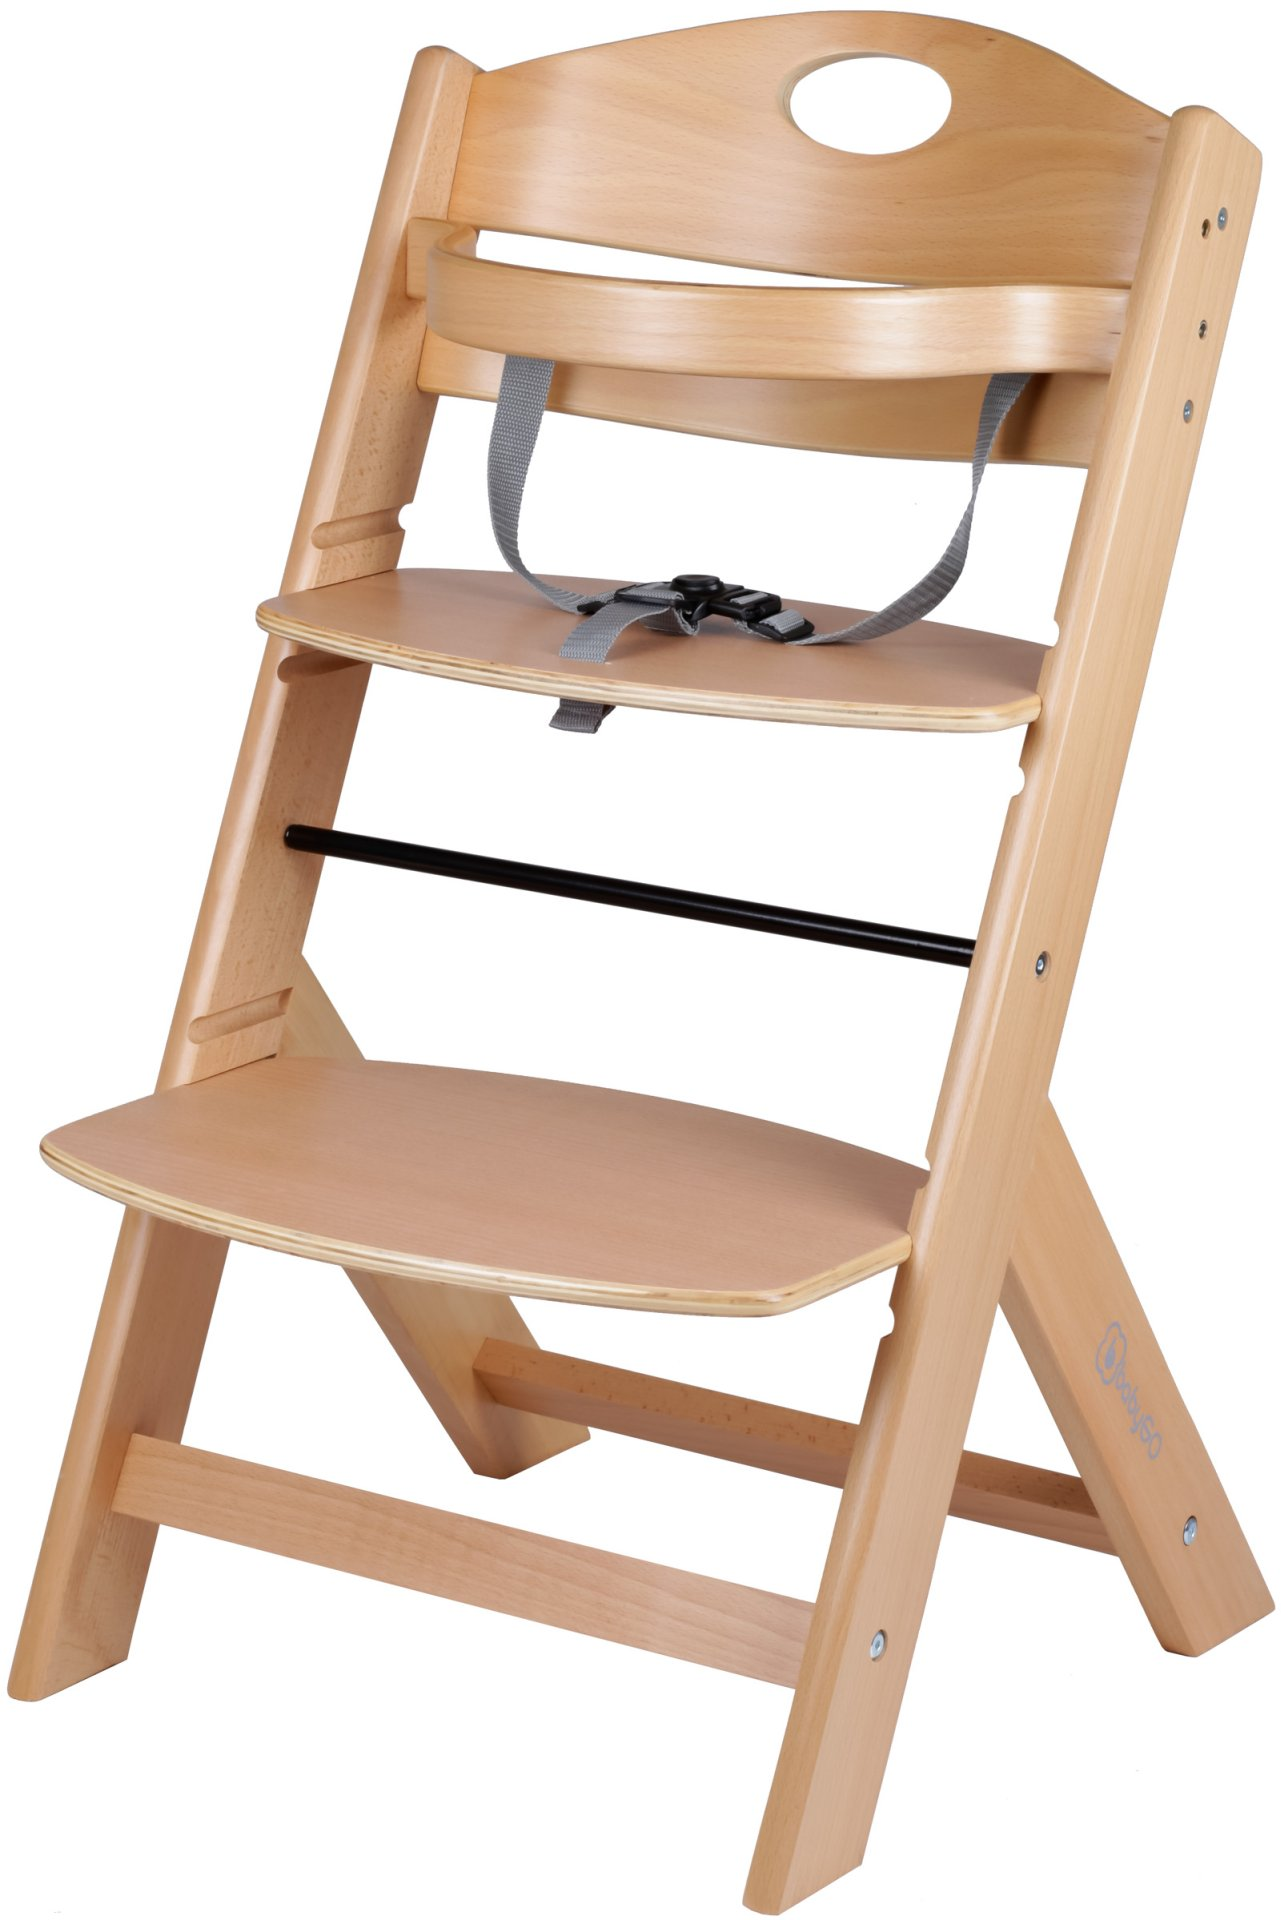 Swing Tray Baby Booster Seat Home /& Travel Child Feeding /& Play Table Highchair